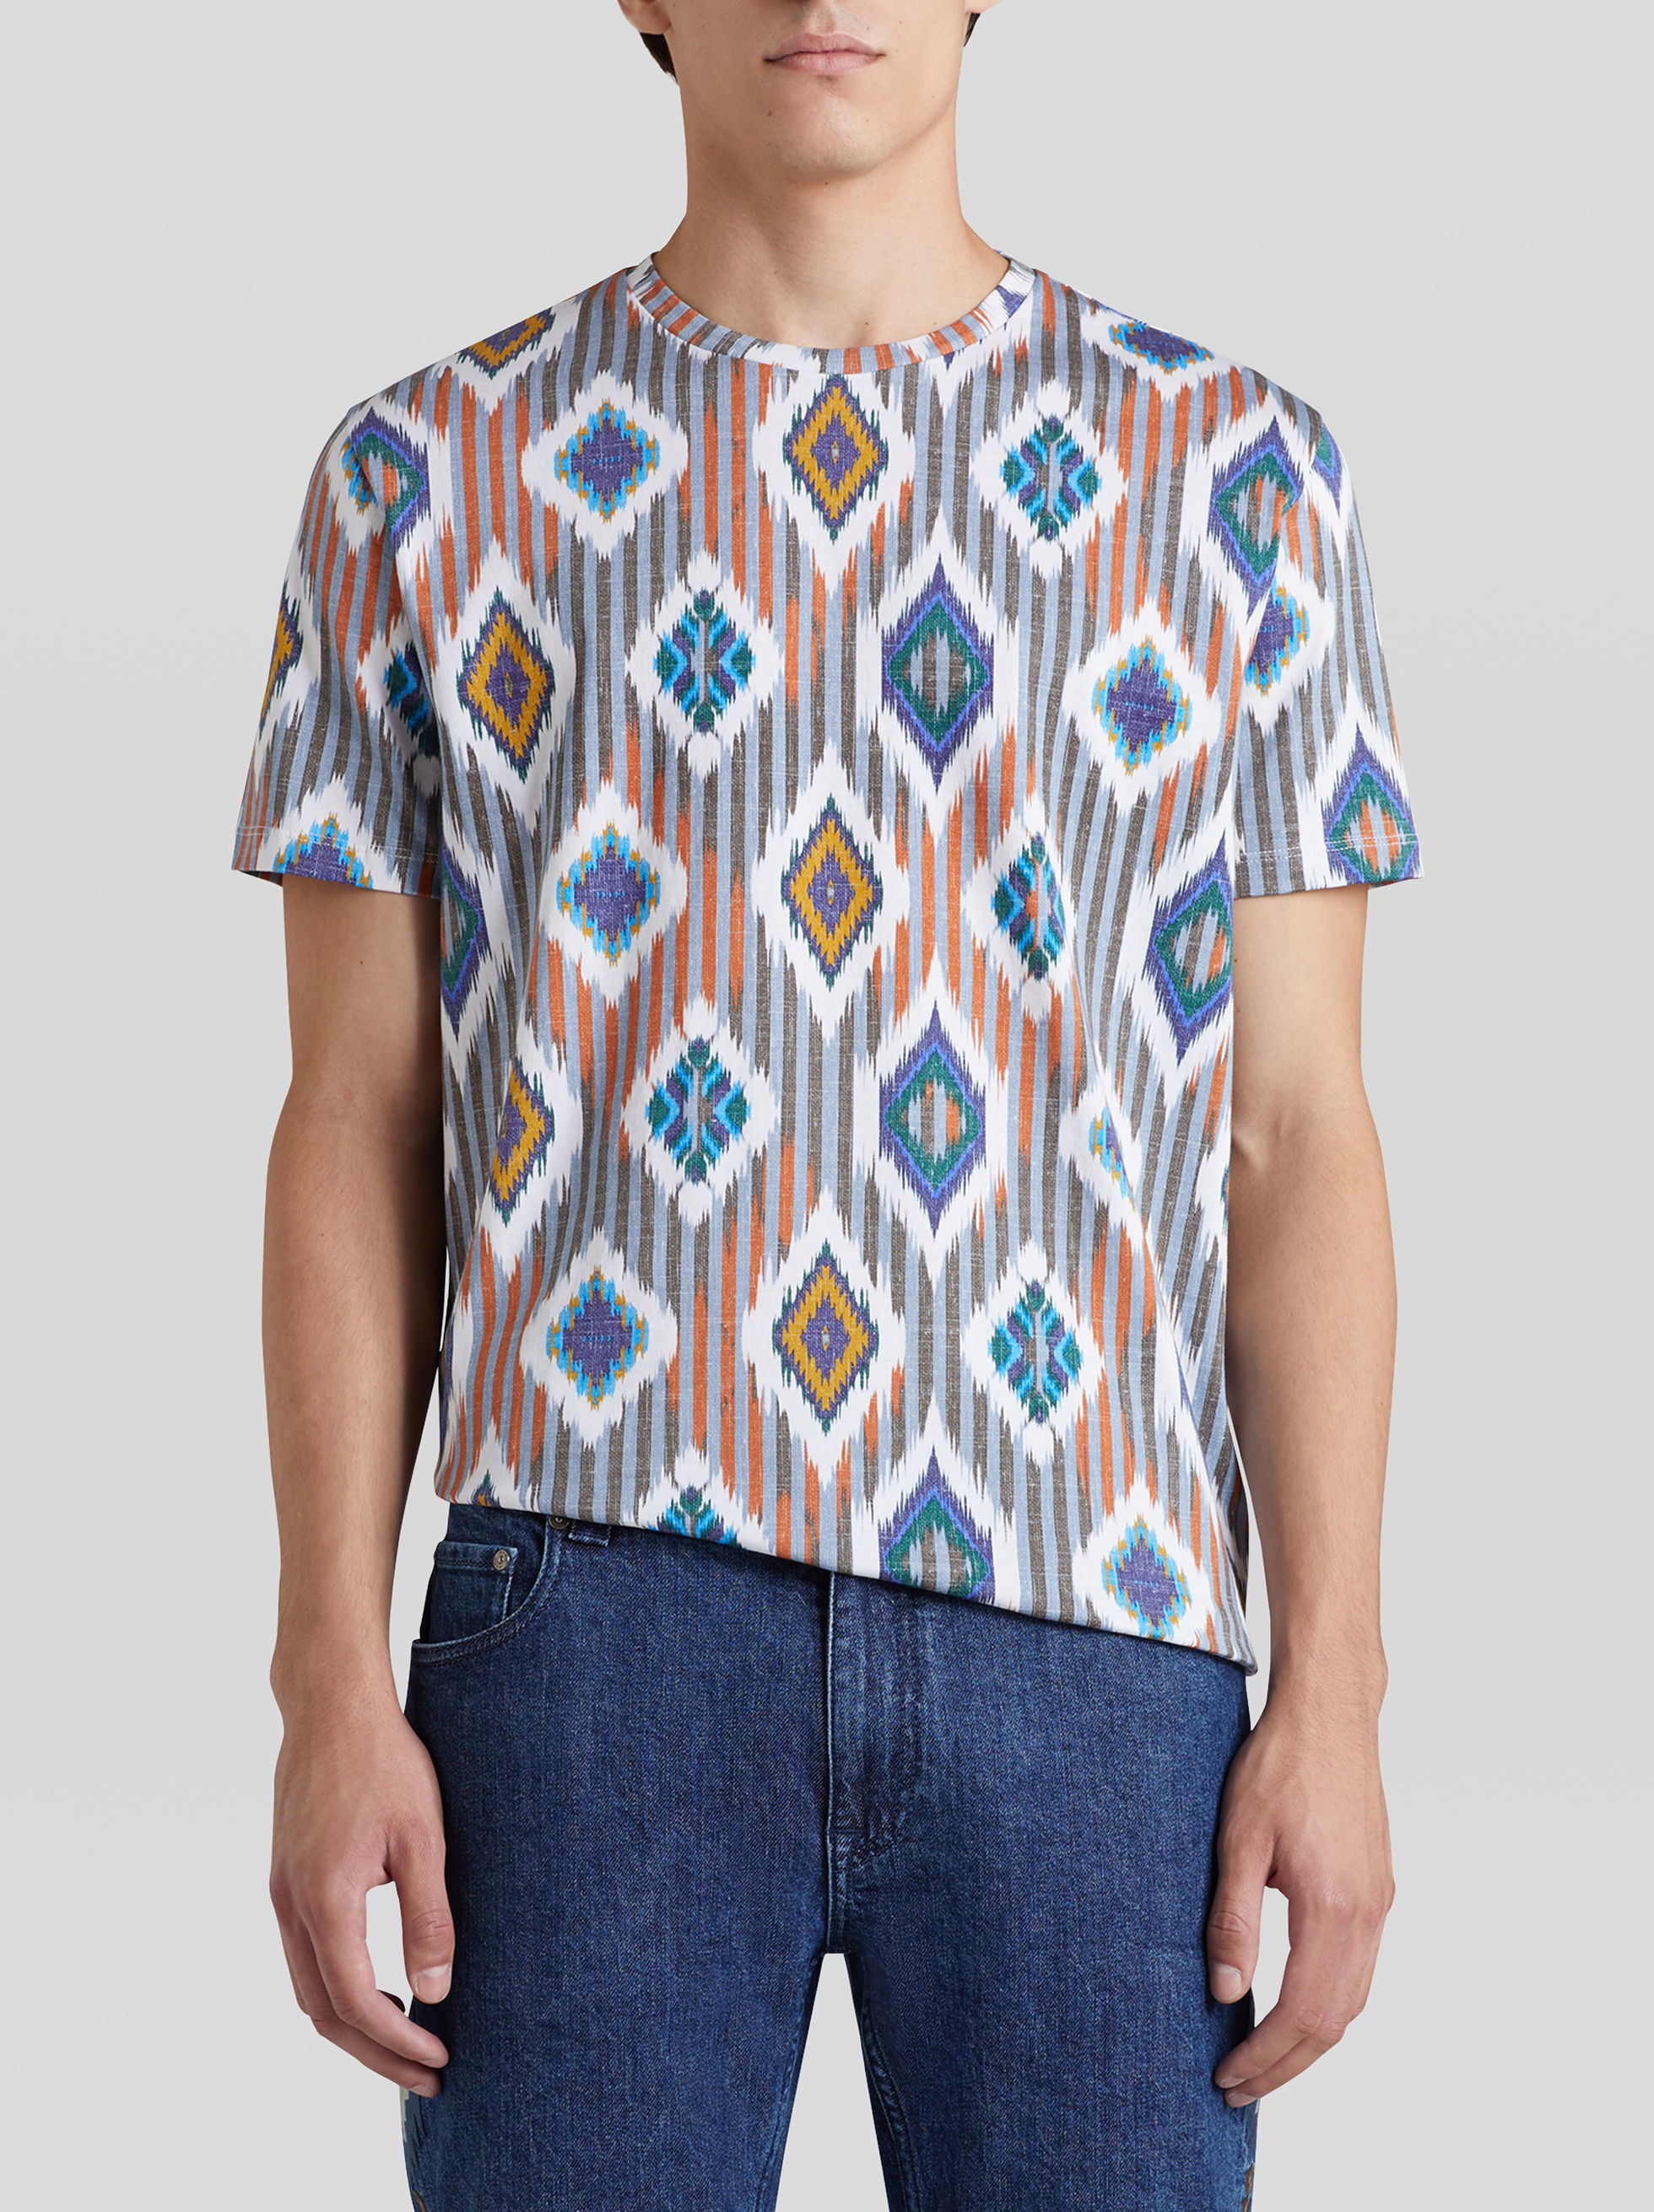 STRIPES AND GEOMETRIC PATTERN COTTON T-SHIRT